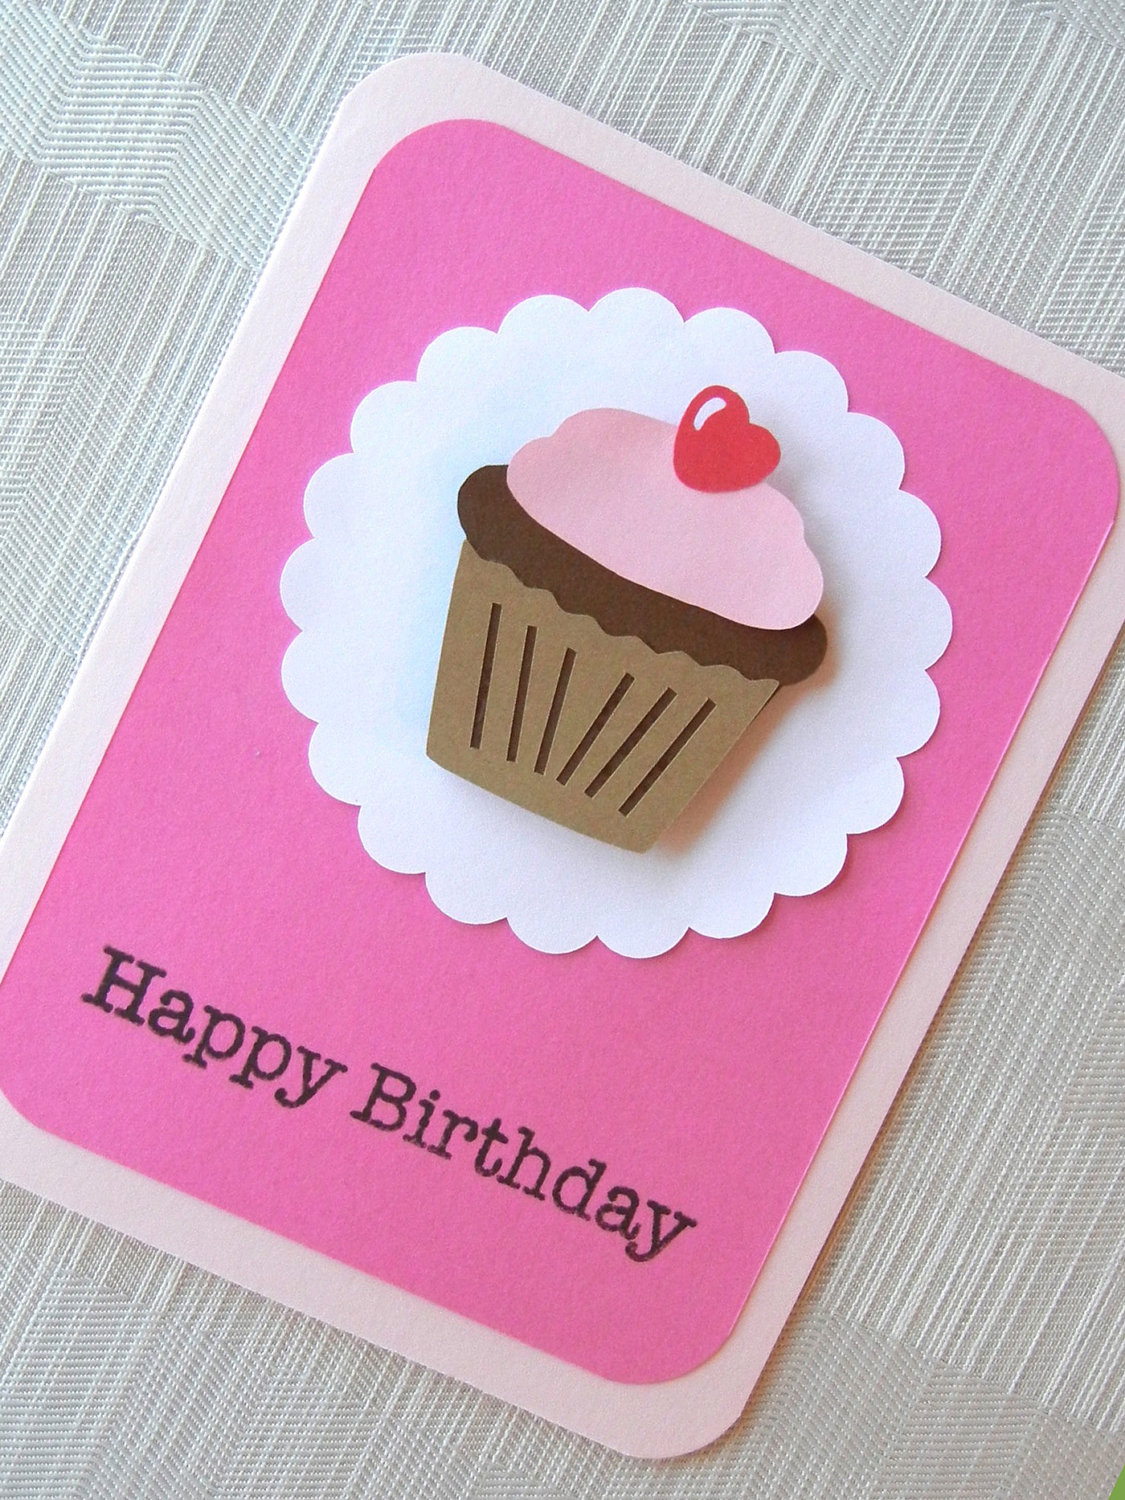 Easy diy birthday cards ideas and designs easy diy birthday cards bookmarktalkfo Choice Image